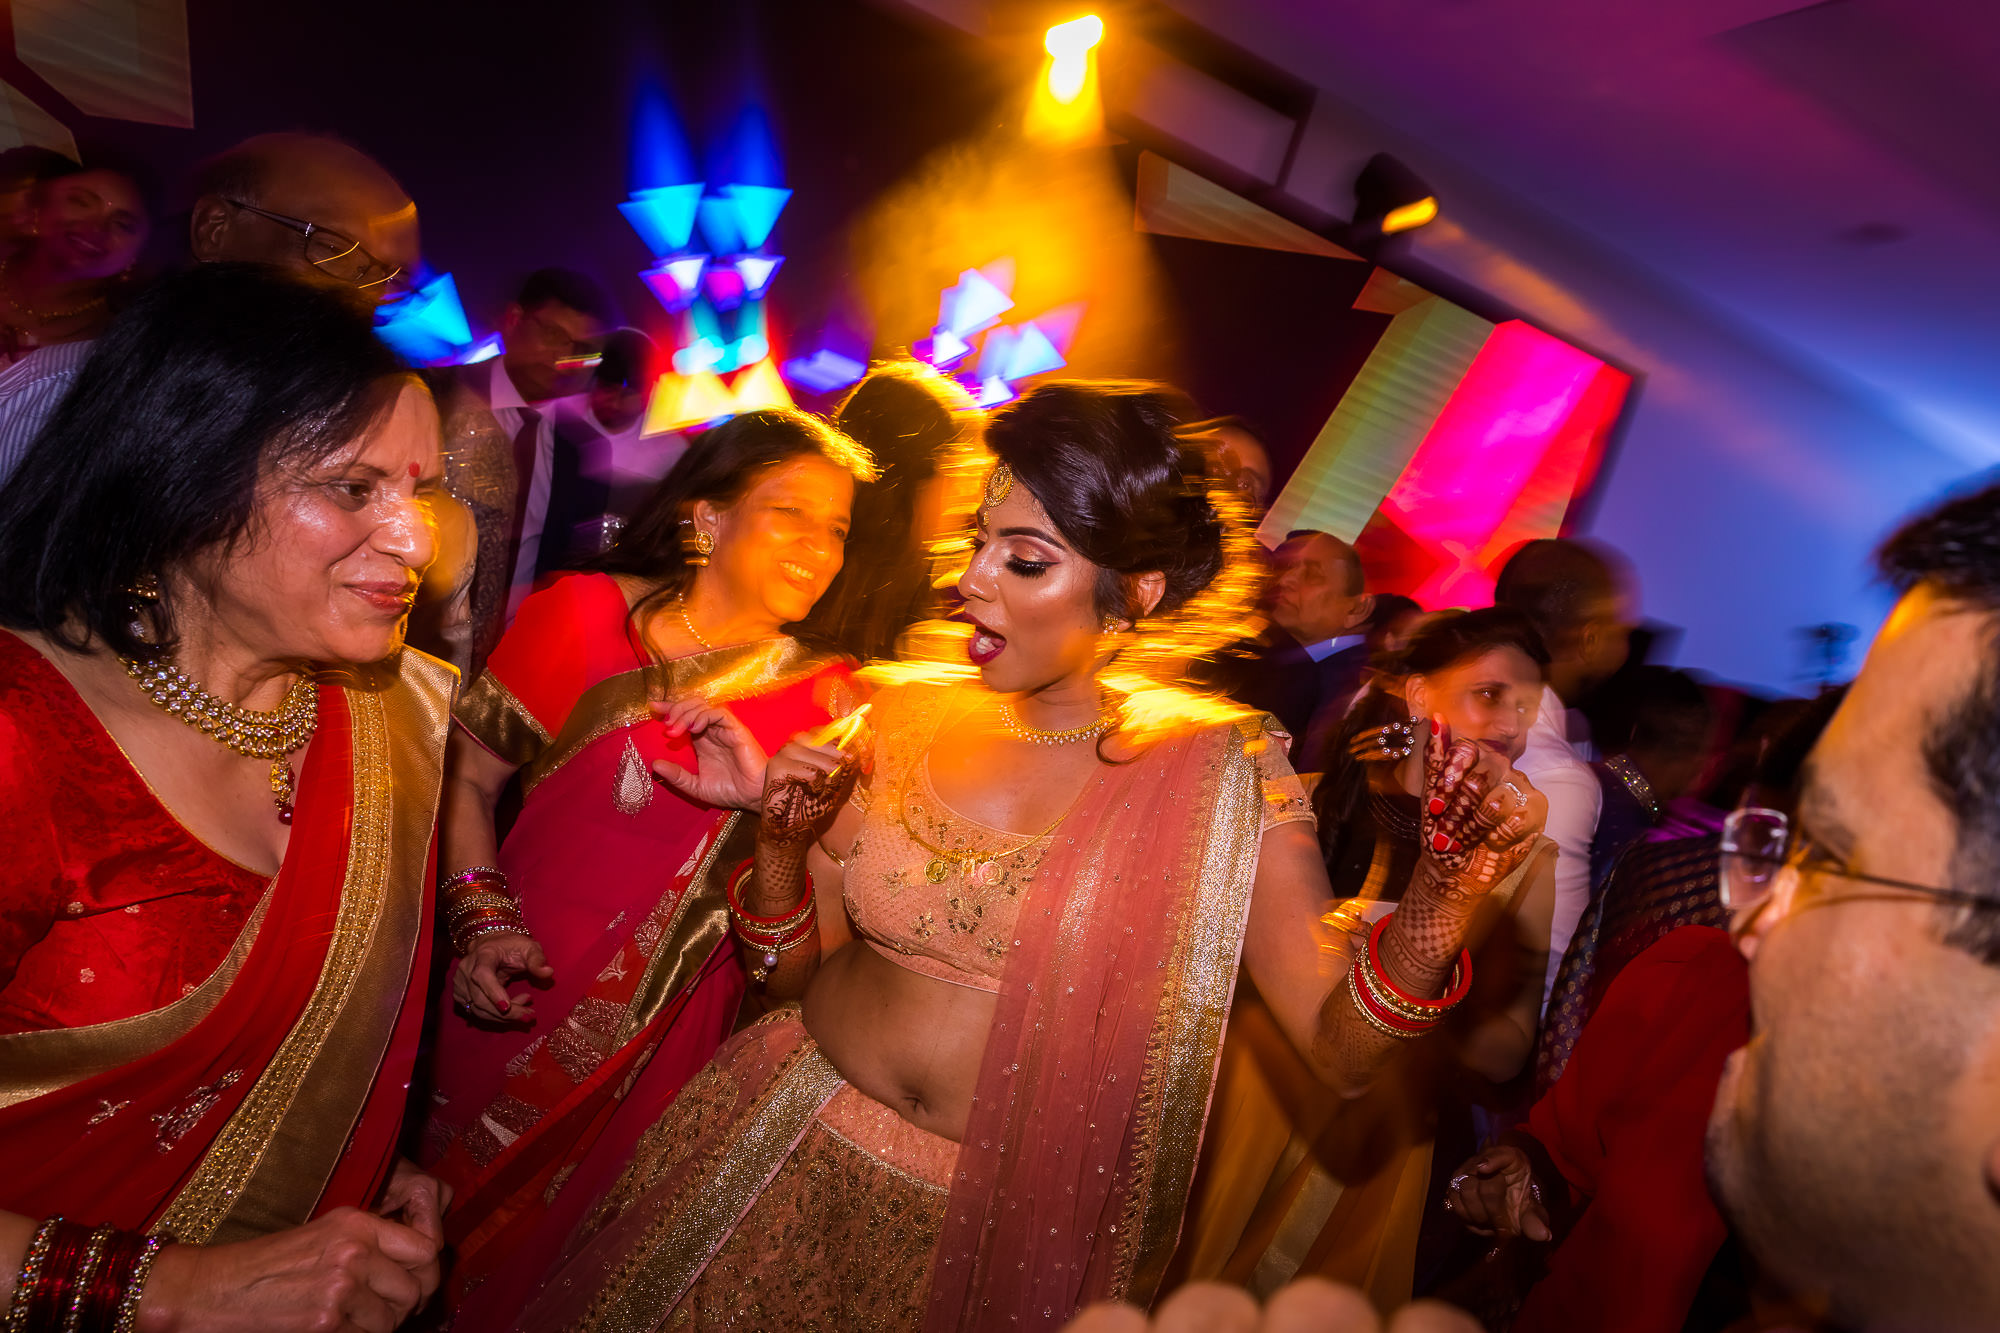 asian-wedding-hindu-tamil-photographer-heythorpe-oxford-0121.jpg